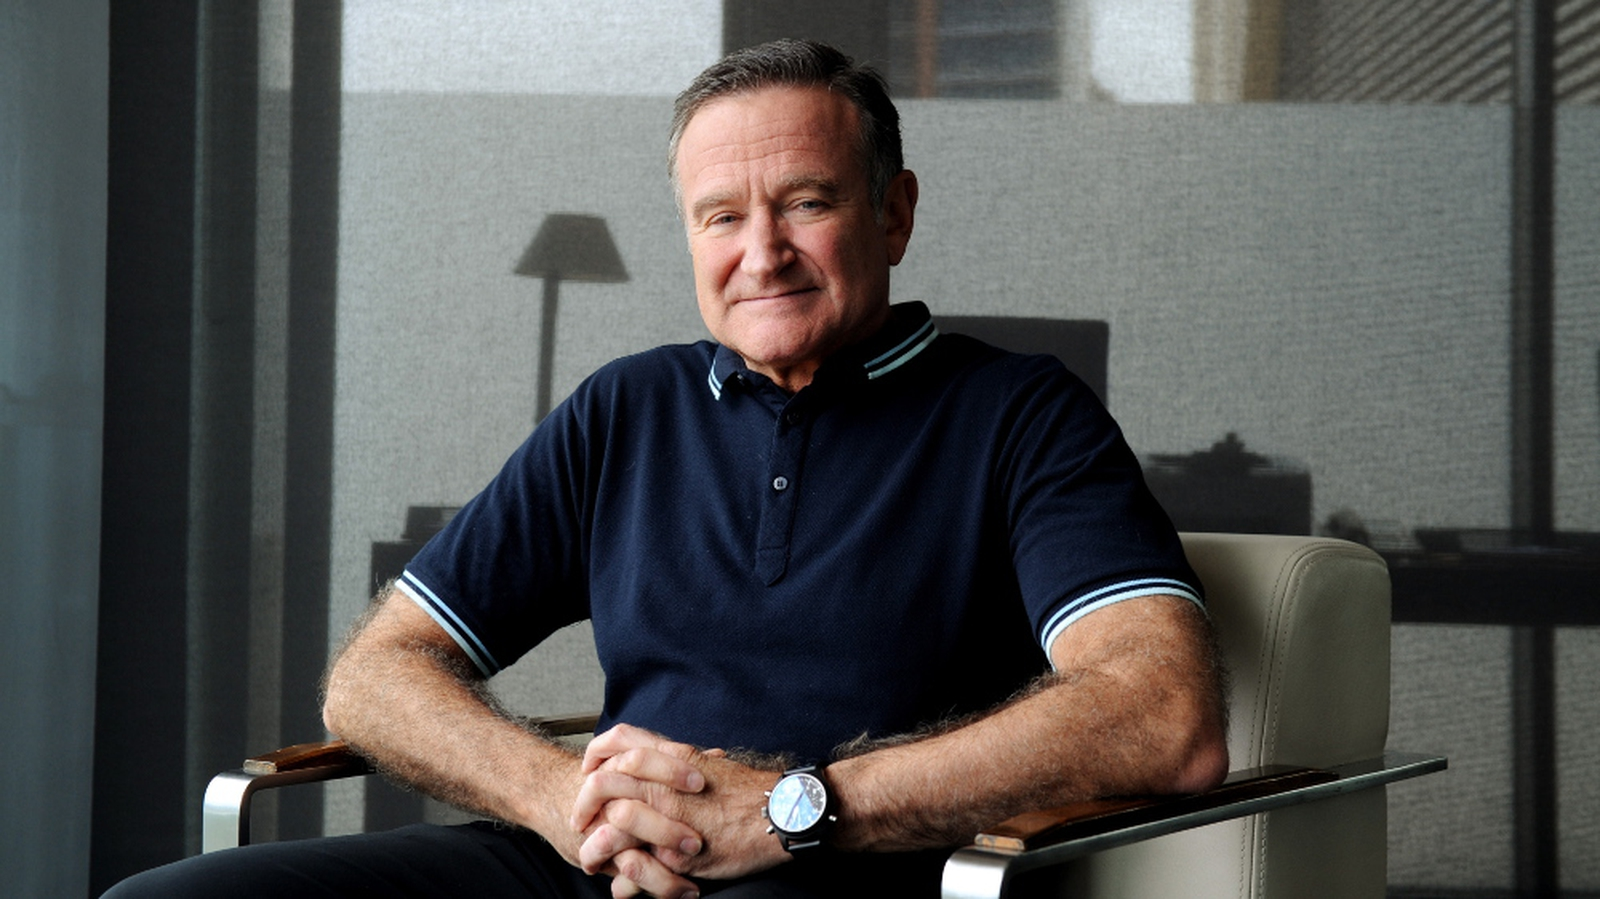 Robin Williams' final days explored in new documentary